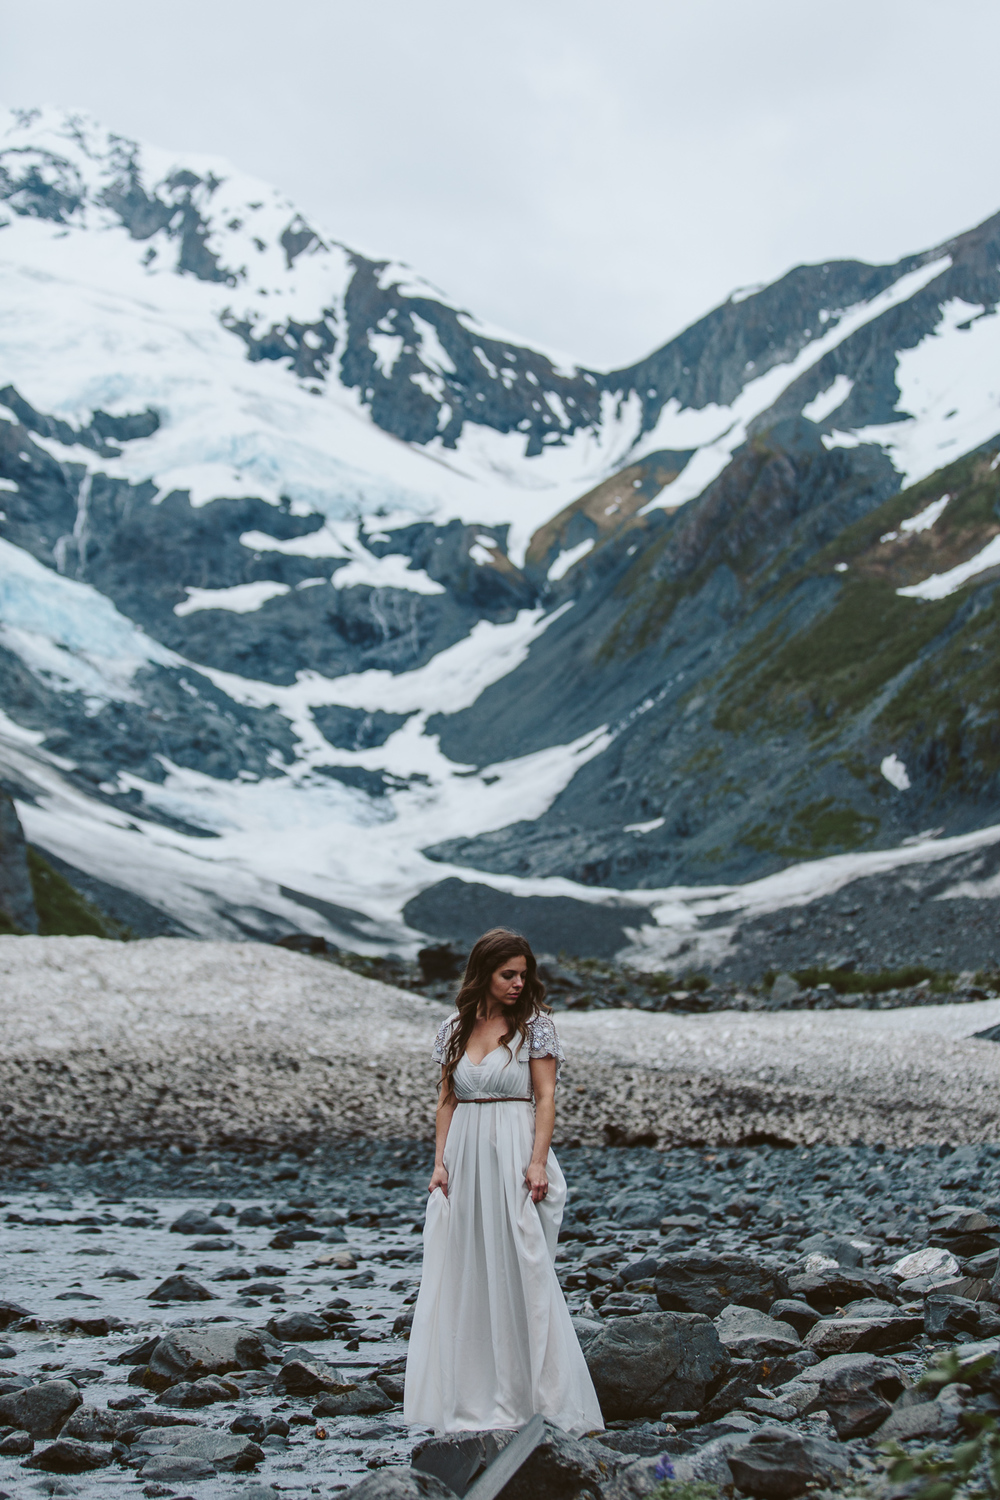 jess-hunter-photographer-alaska-destination-elopement-6135.jpg